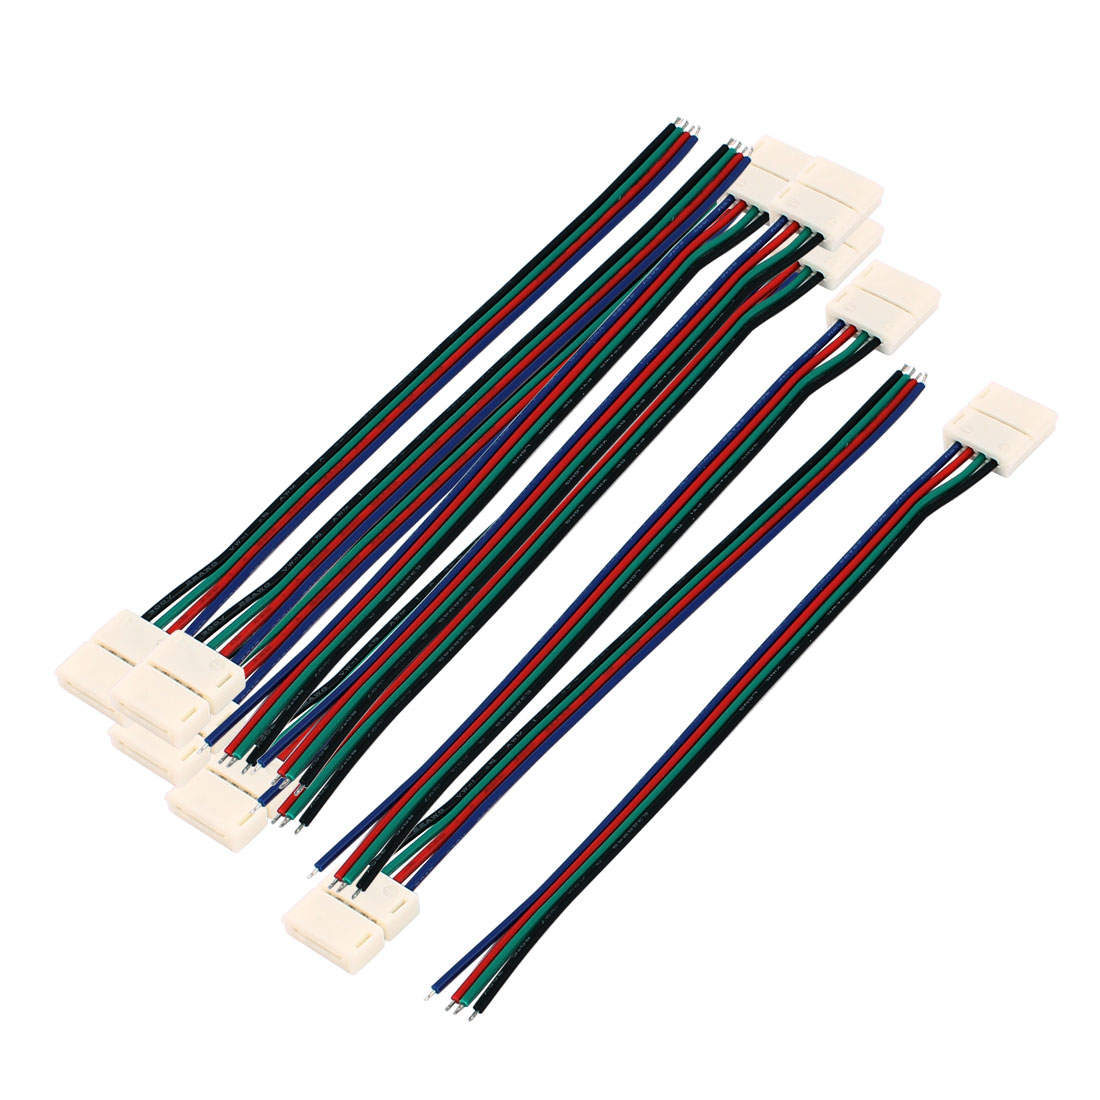 10Pcs 15cm Long 10mm Width 4 Pin Wire Connector for Led SMD 5050 RGB Strip